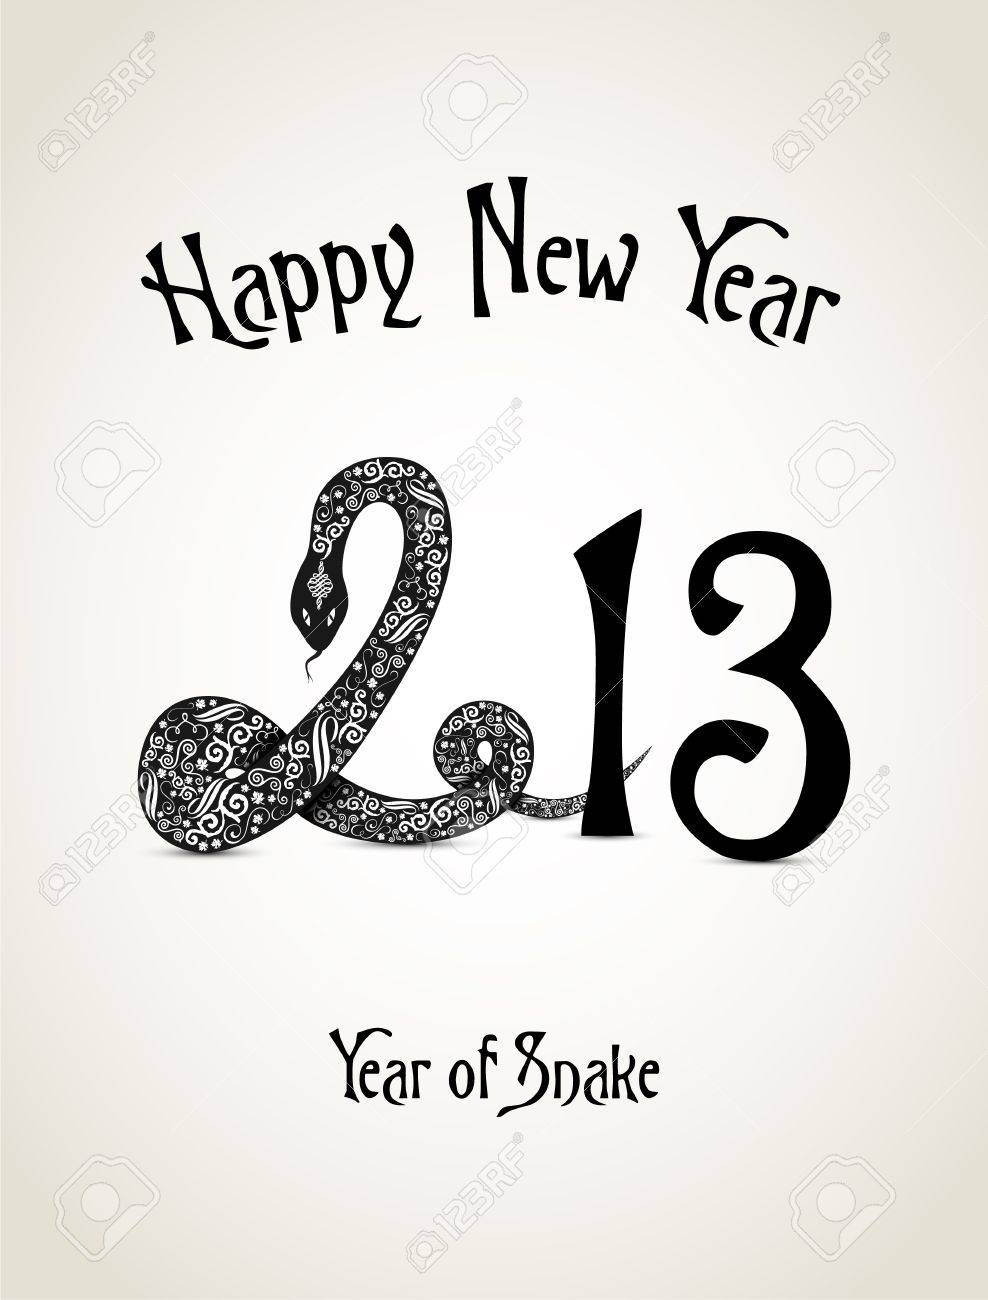 New Year card with snake representing a year of snake Stock Vector - 16188057